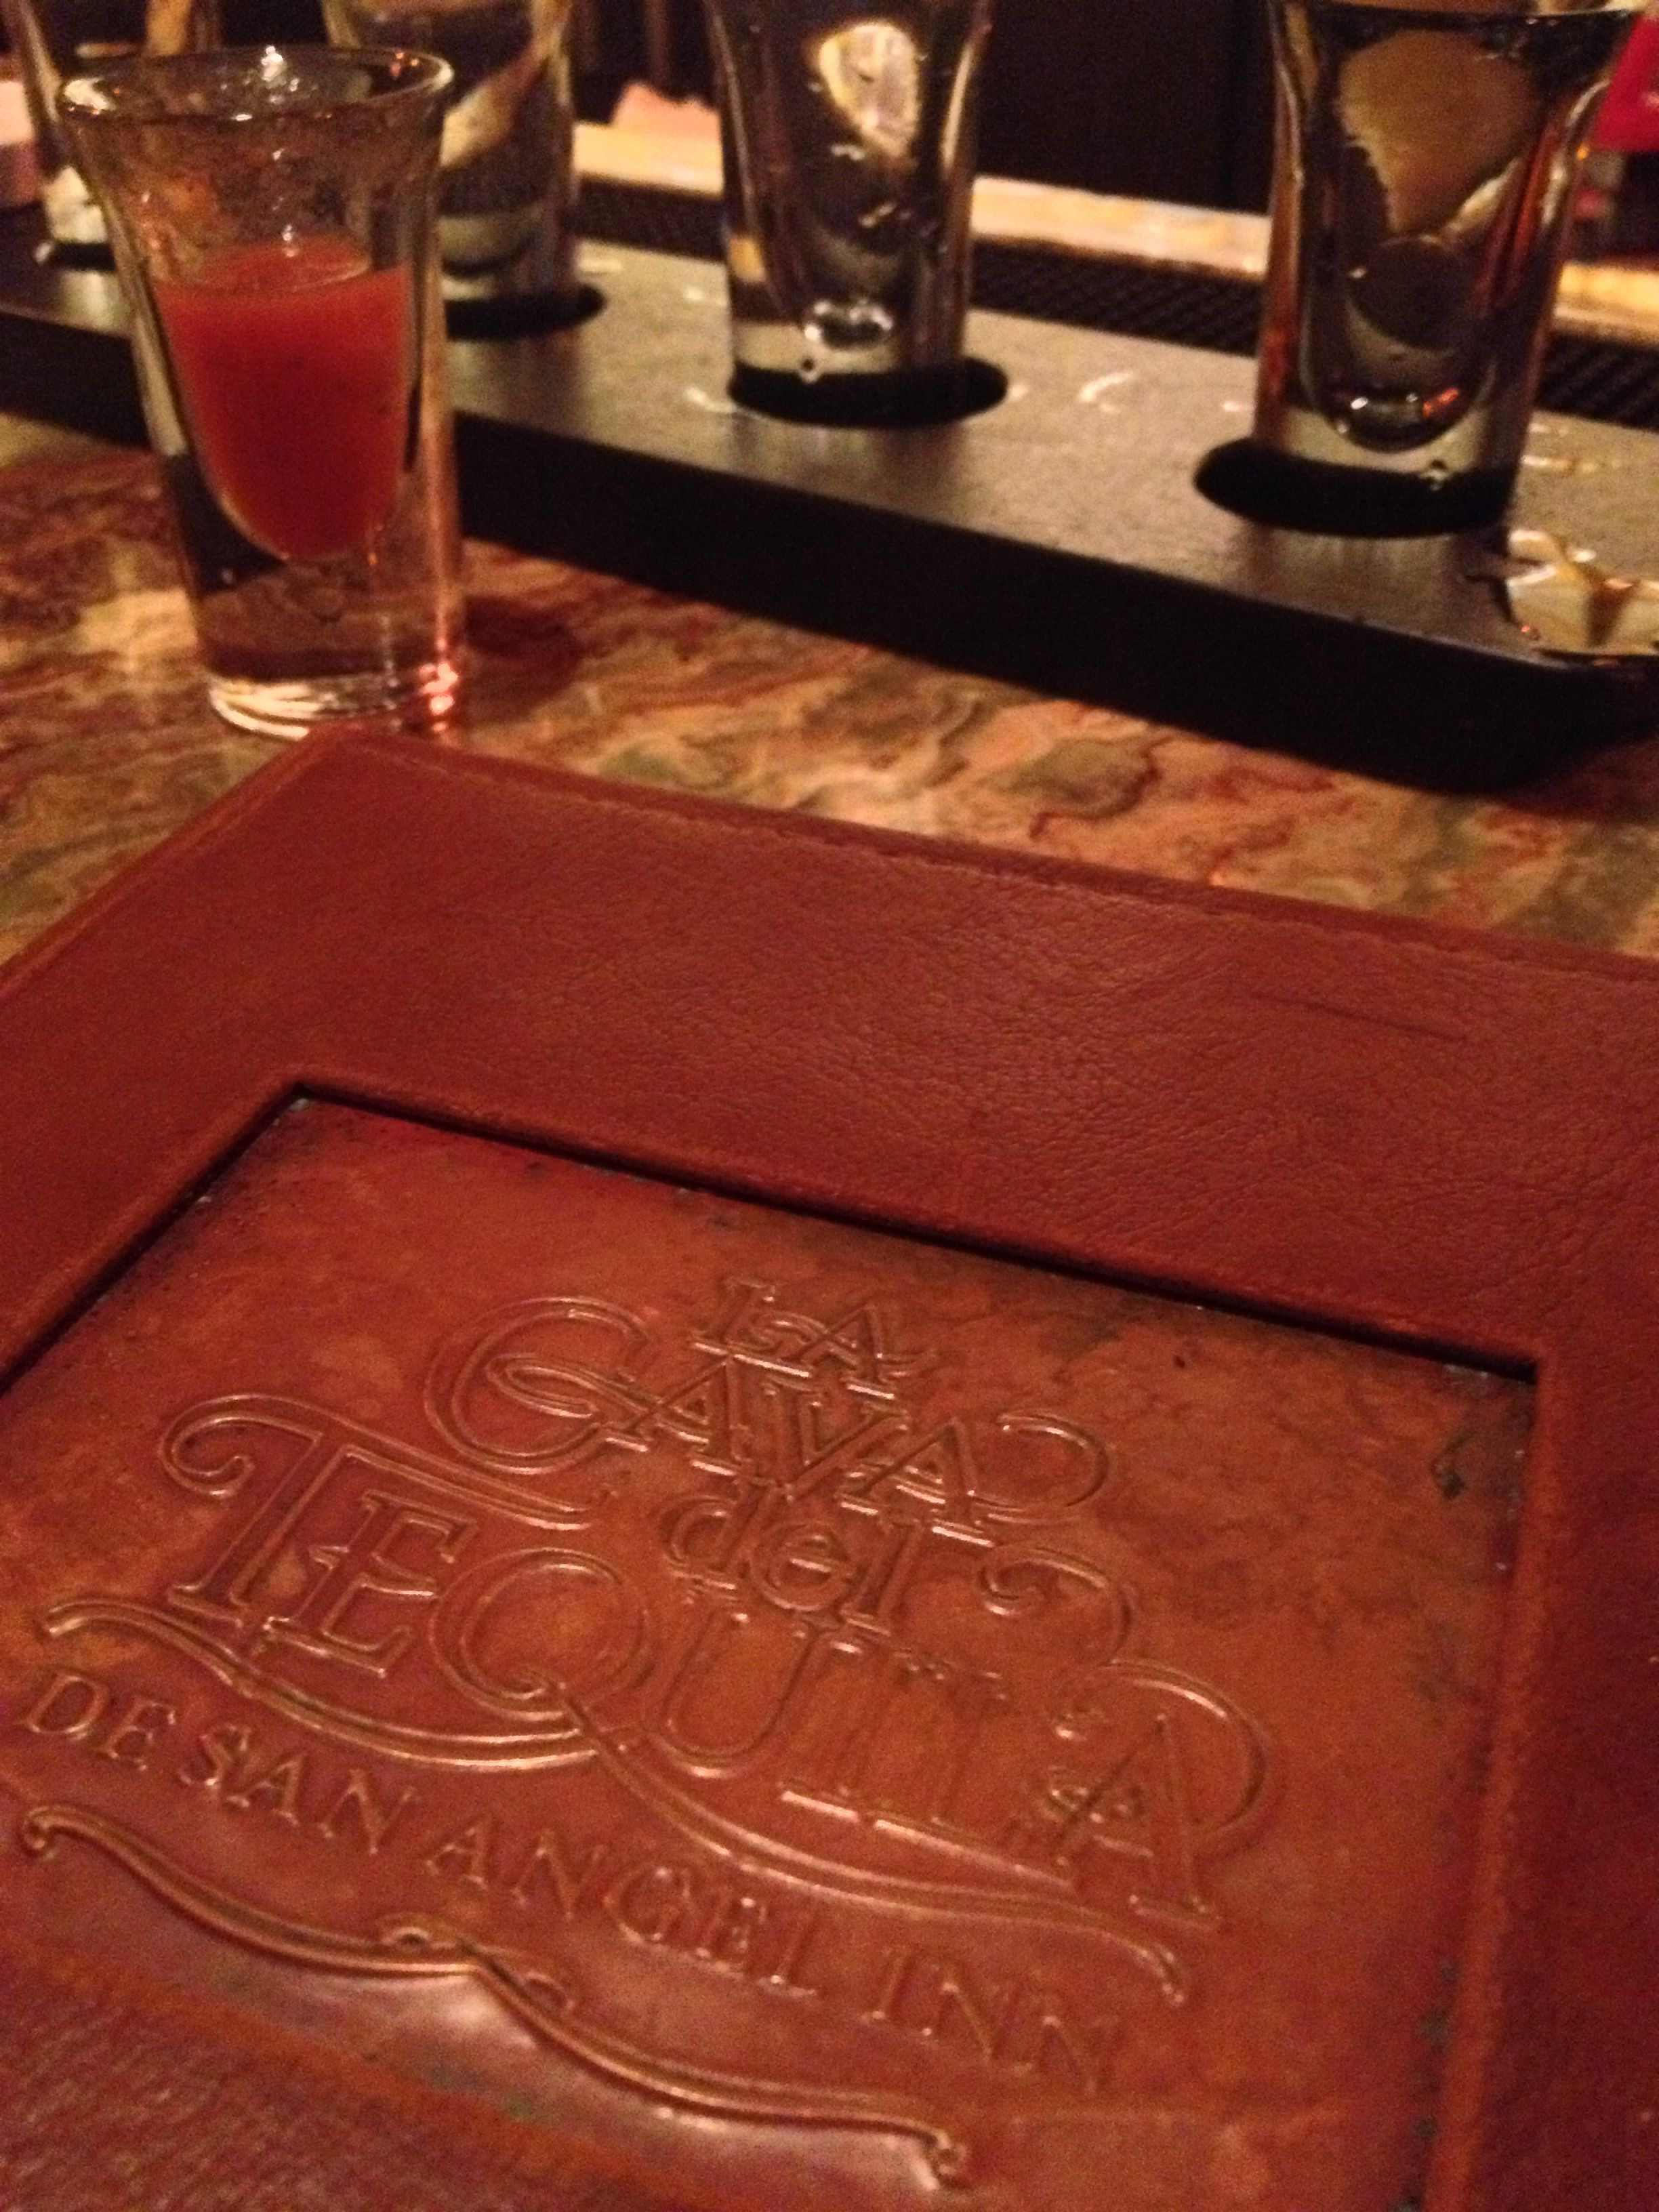 The Best Tequila Bar In The World La Cava Del Tequila Epcot Walt Disney World Best Tequila Tequila Bar Tequila